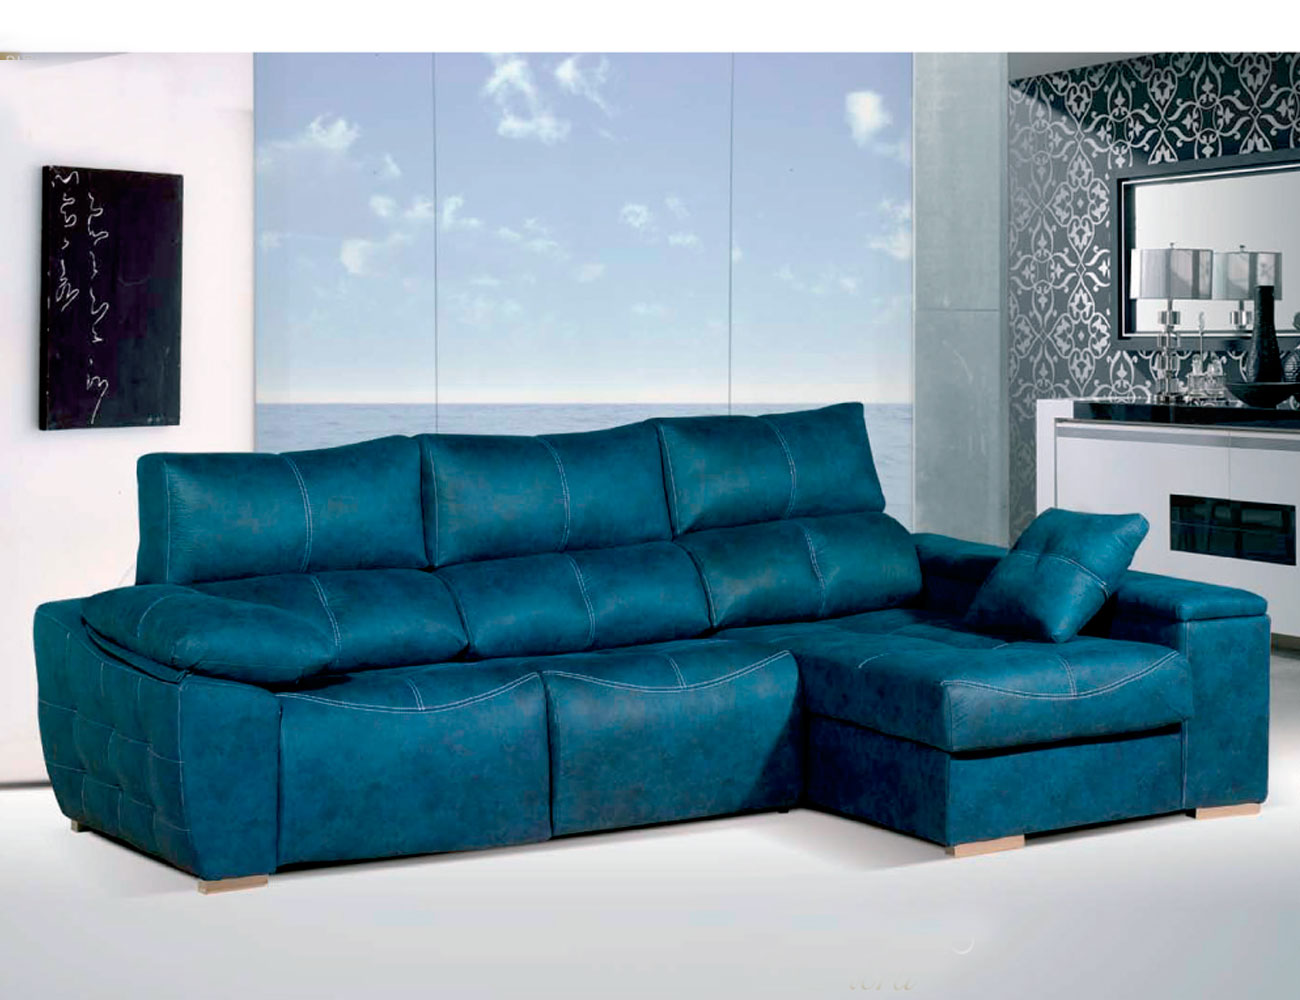 Sofa chaiselongue relax 2 motores anti manchas turquesa11